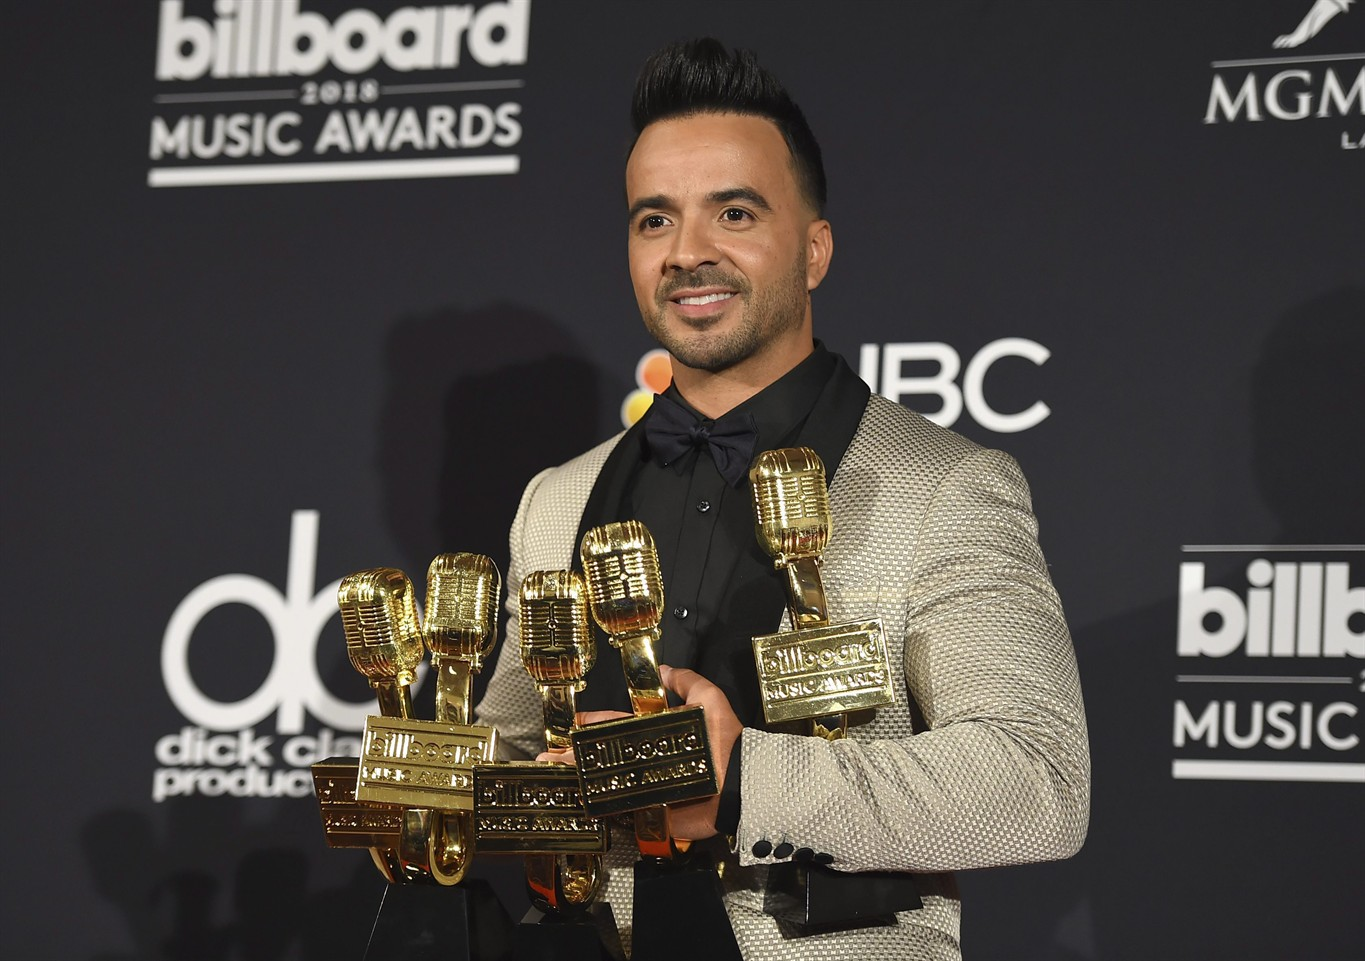 Winners in the top categories at Billboard Music Awards